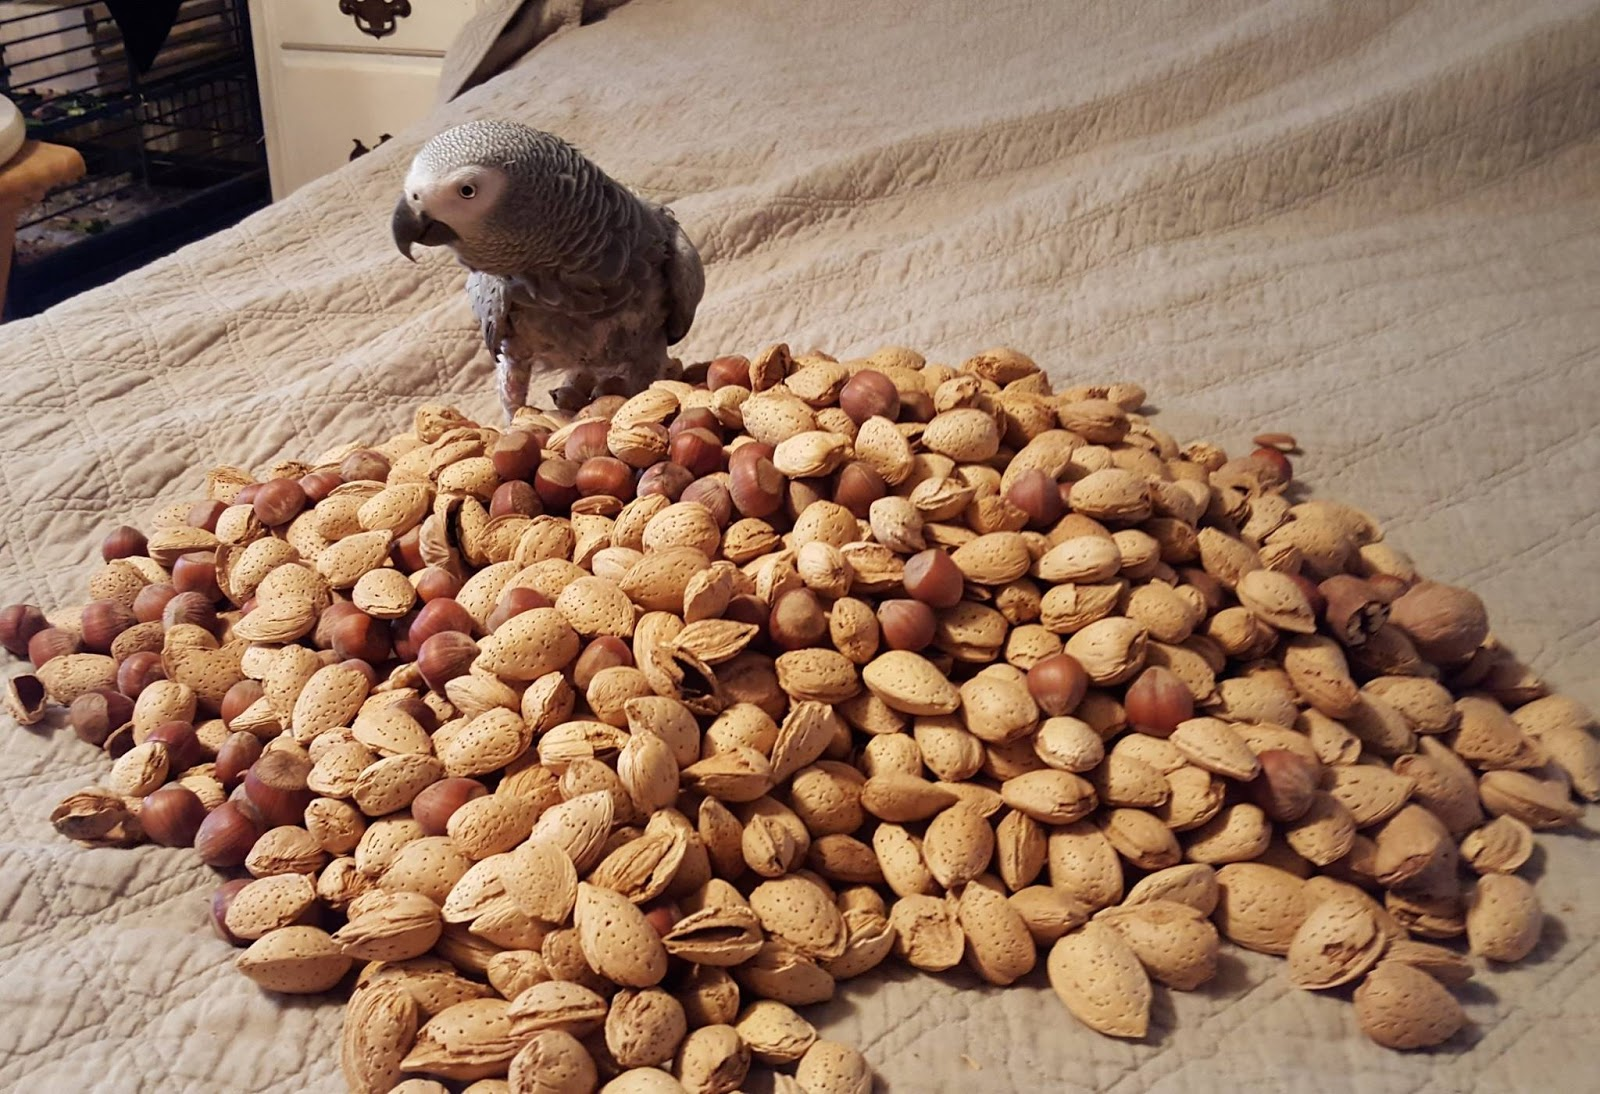 Seed for Parrots